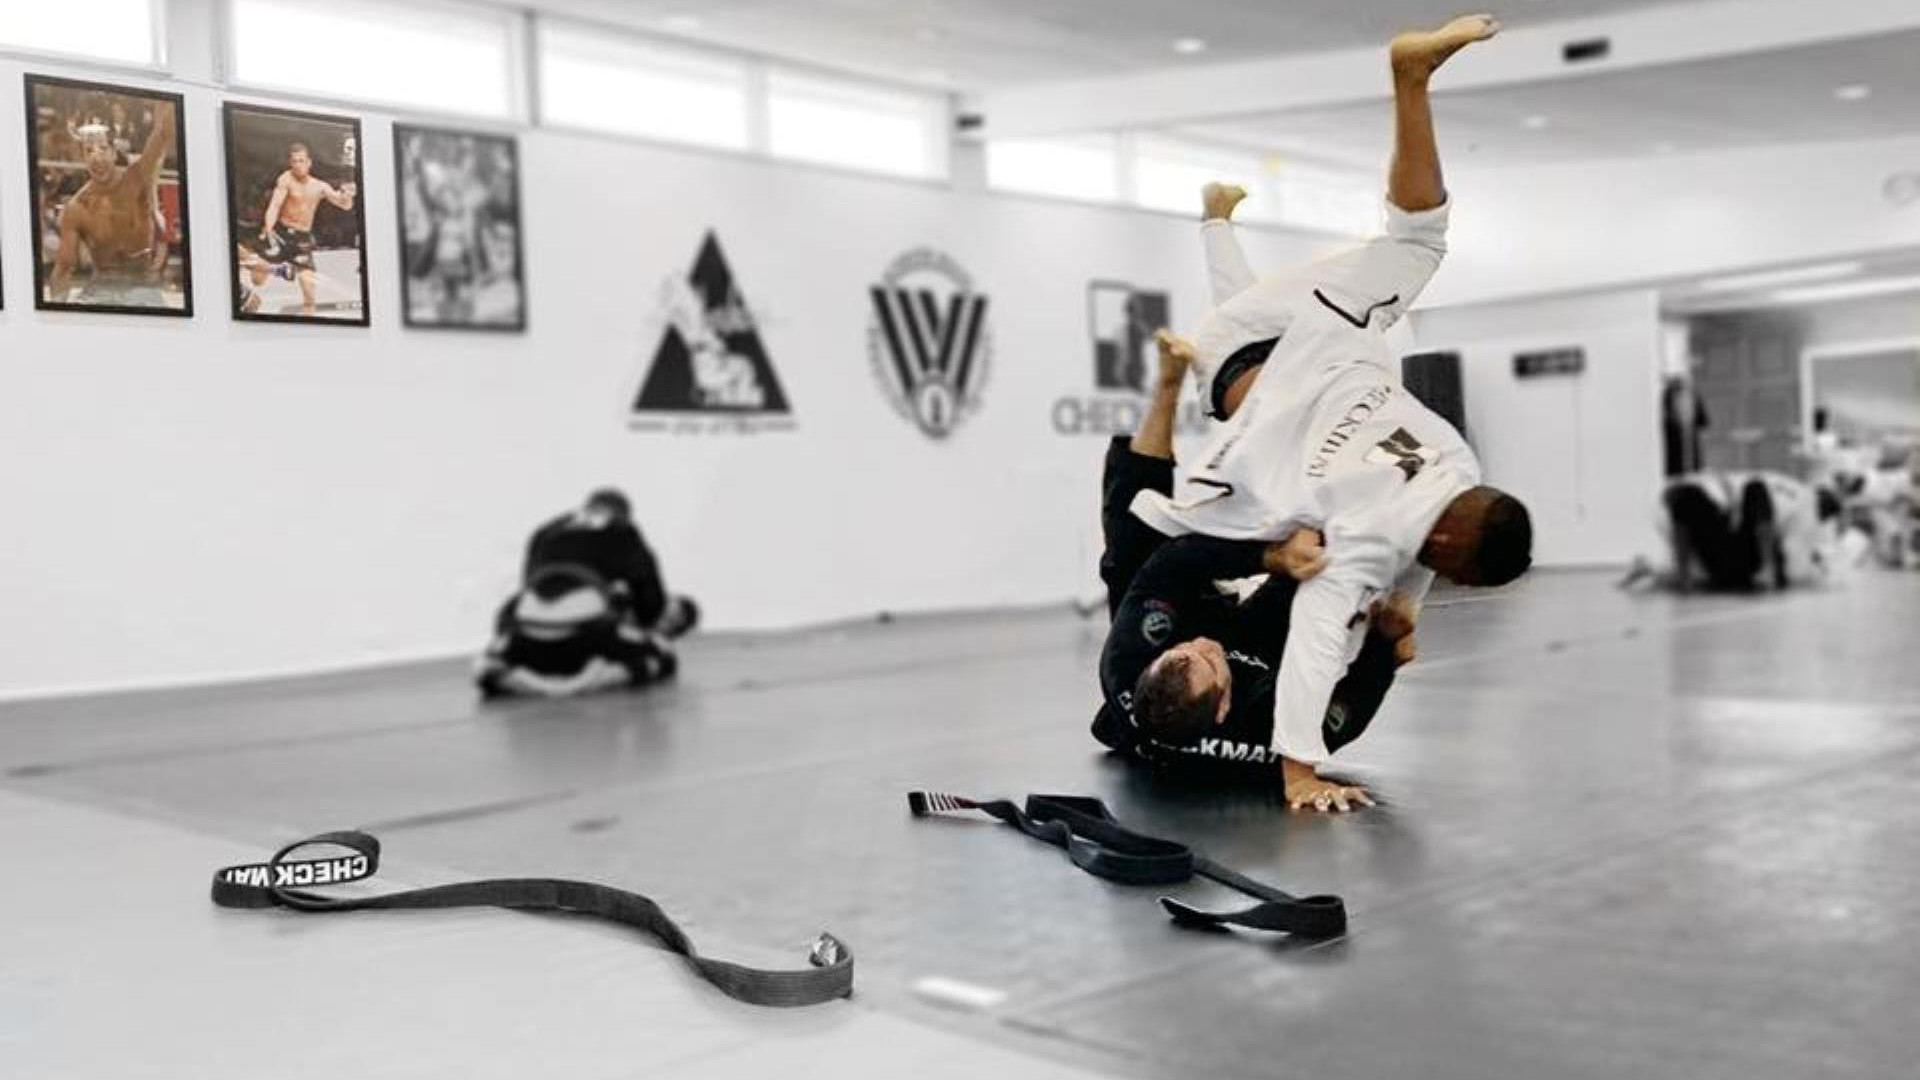 <style>  v {    text-shadow: 2px 2px 8px #1e2a55;  color: #fff; } </style><strong><v>BJJ | Kids Martial Arts | Women's Self Defense</v></strong>